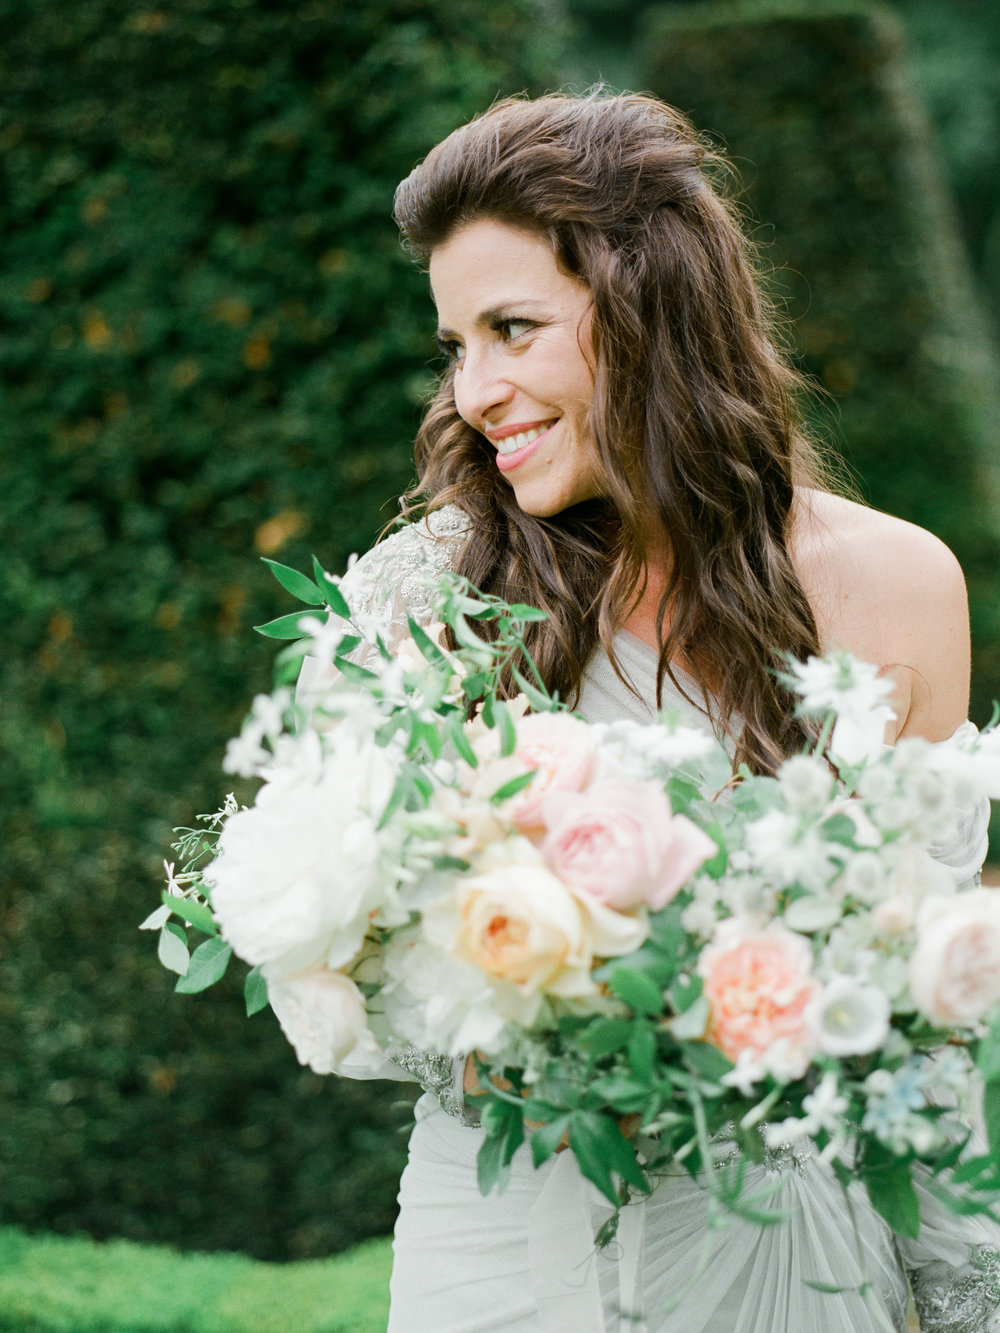 fine art wedding florist, foraged floral, bridal bouquet with peonies and garden roses for wedding in paris.jpg